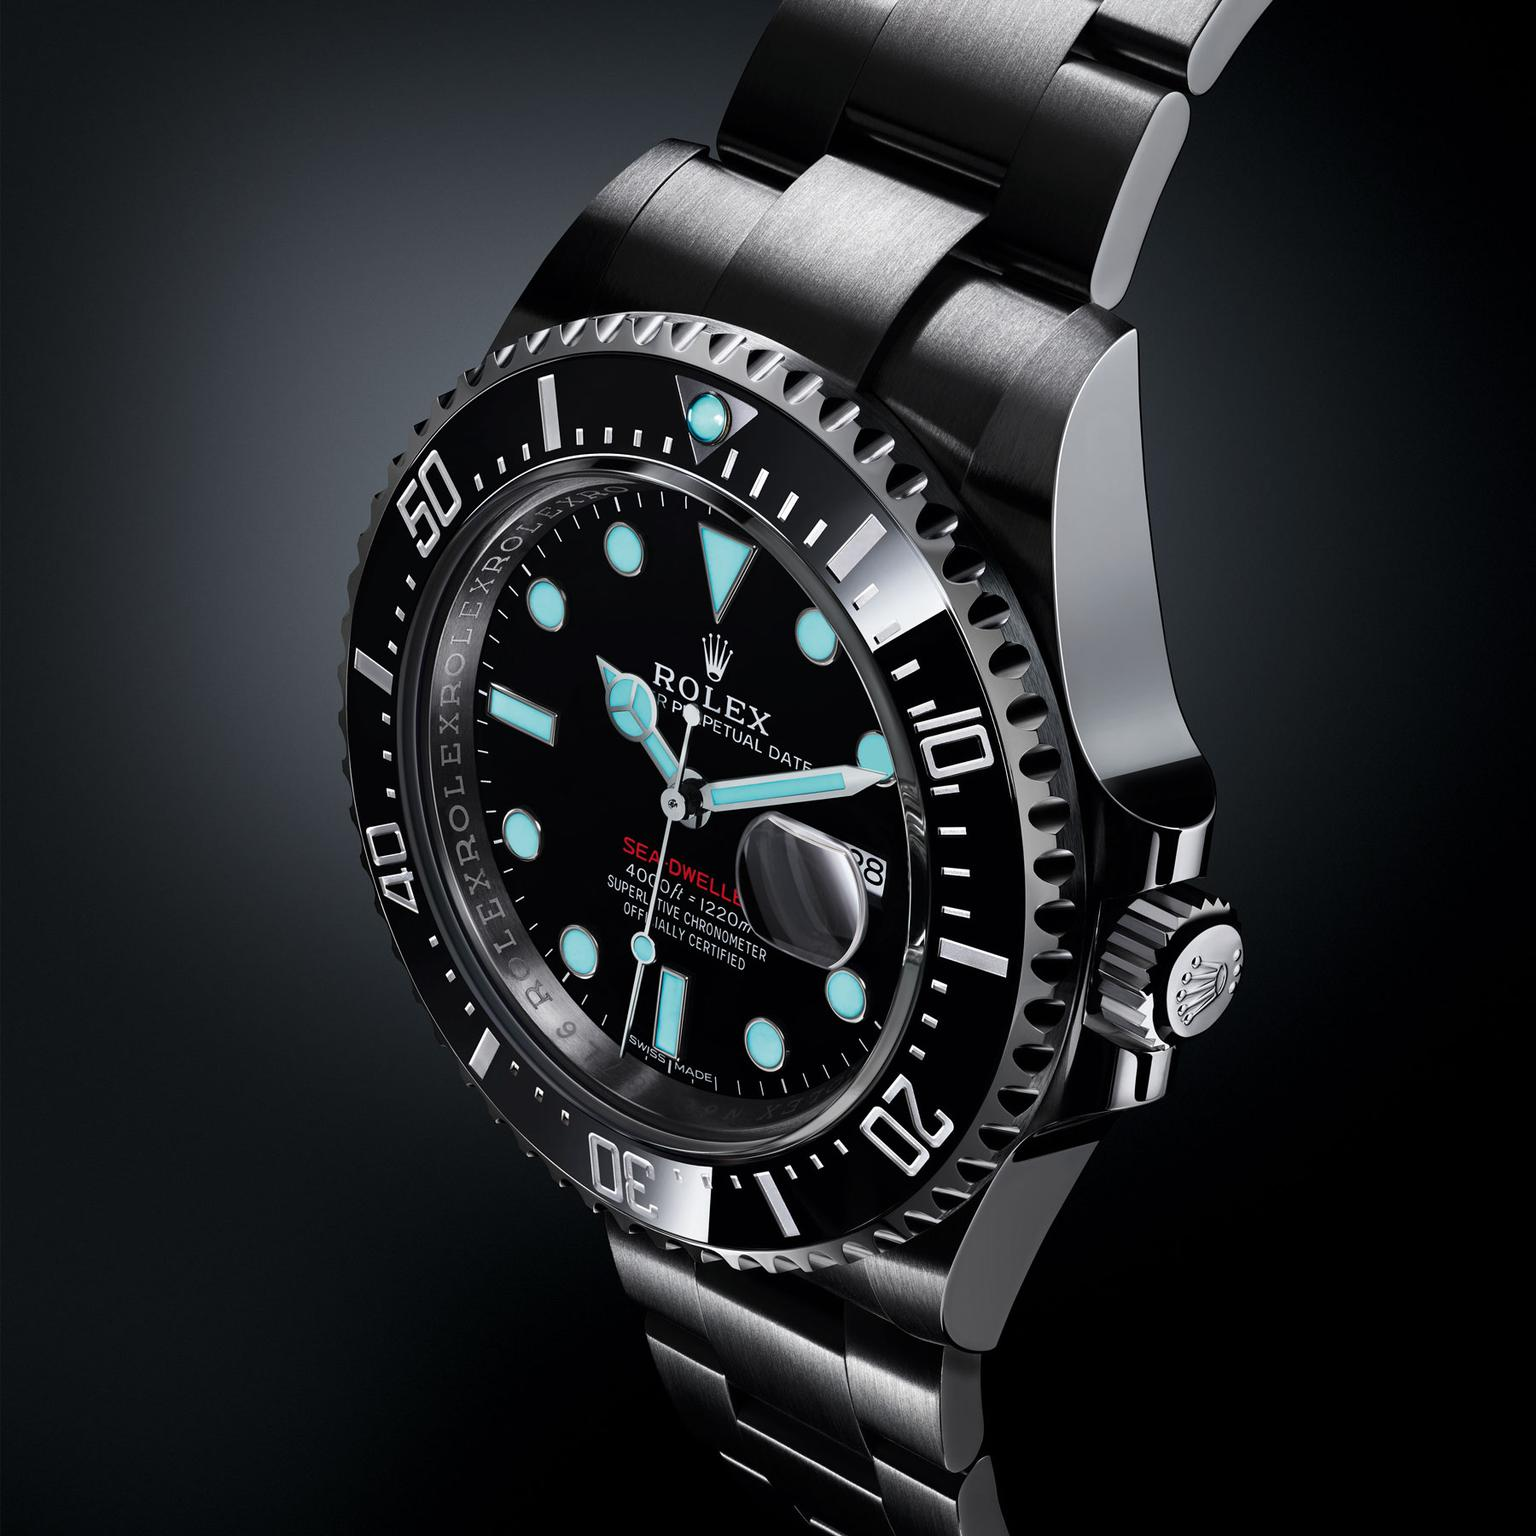 Rolex Sea-Dweller 43mm watch 50th anniversary